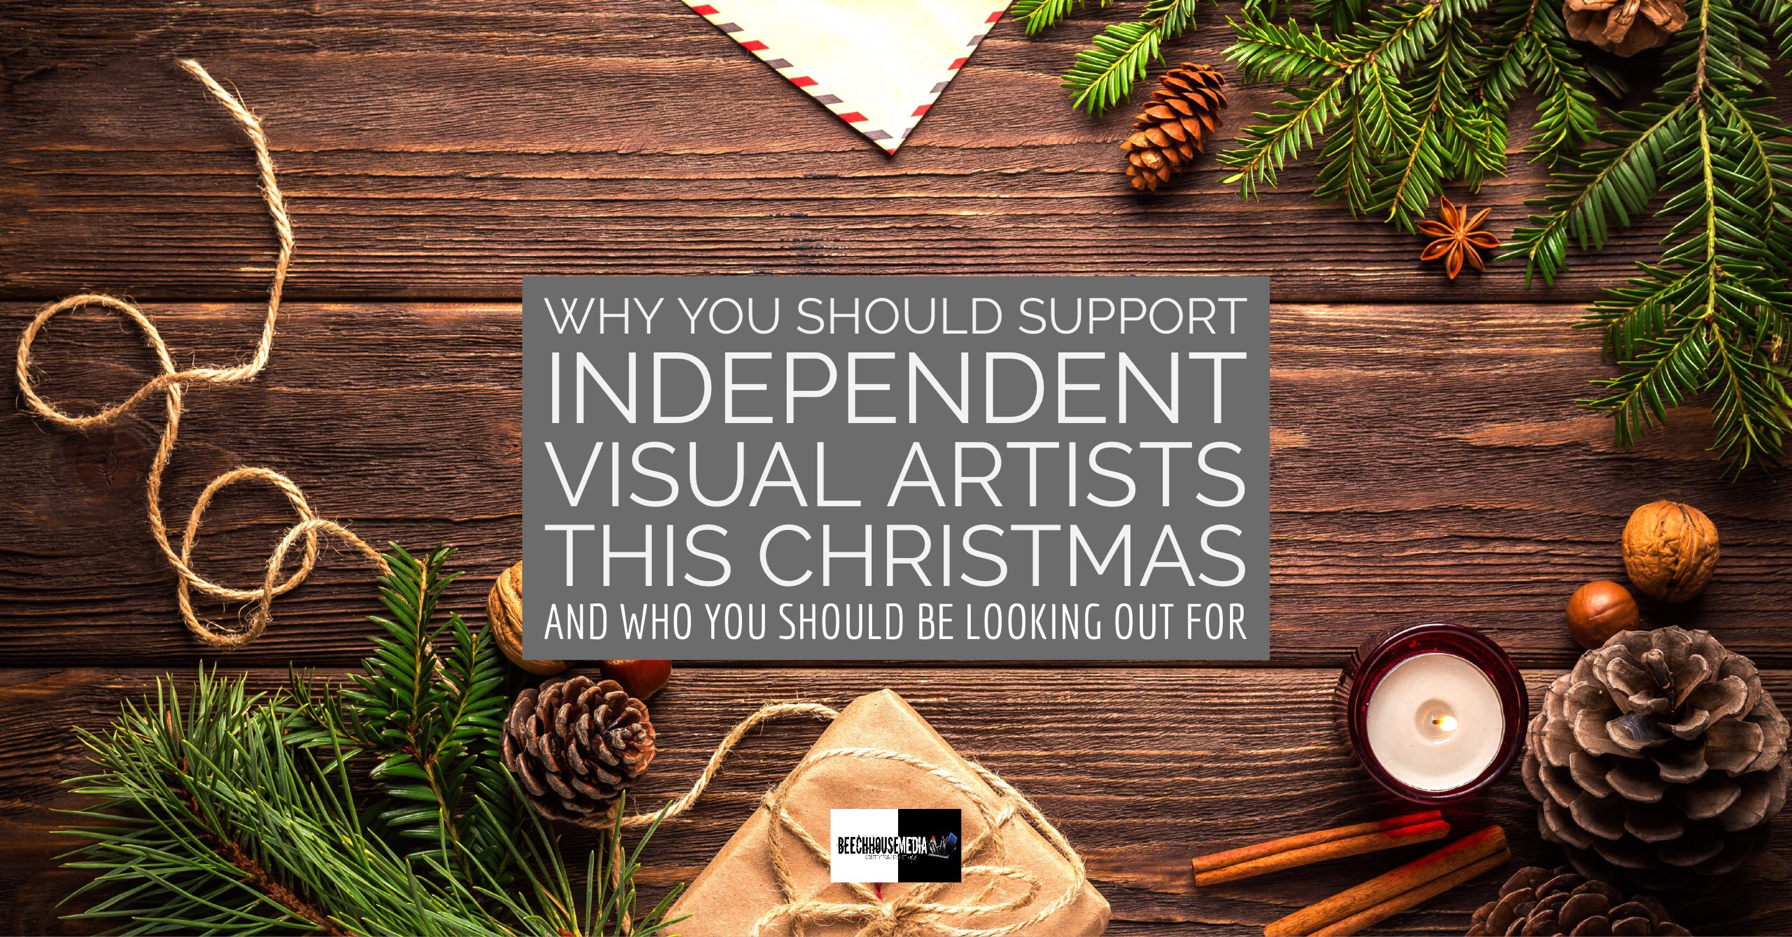 why you should support independent visual artists this Christmas